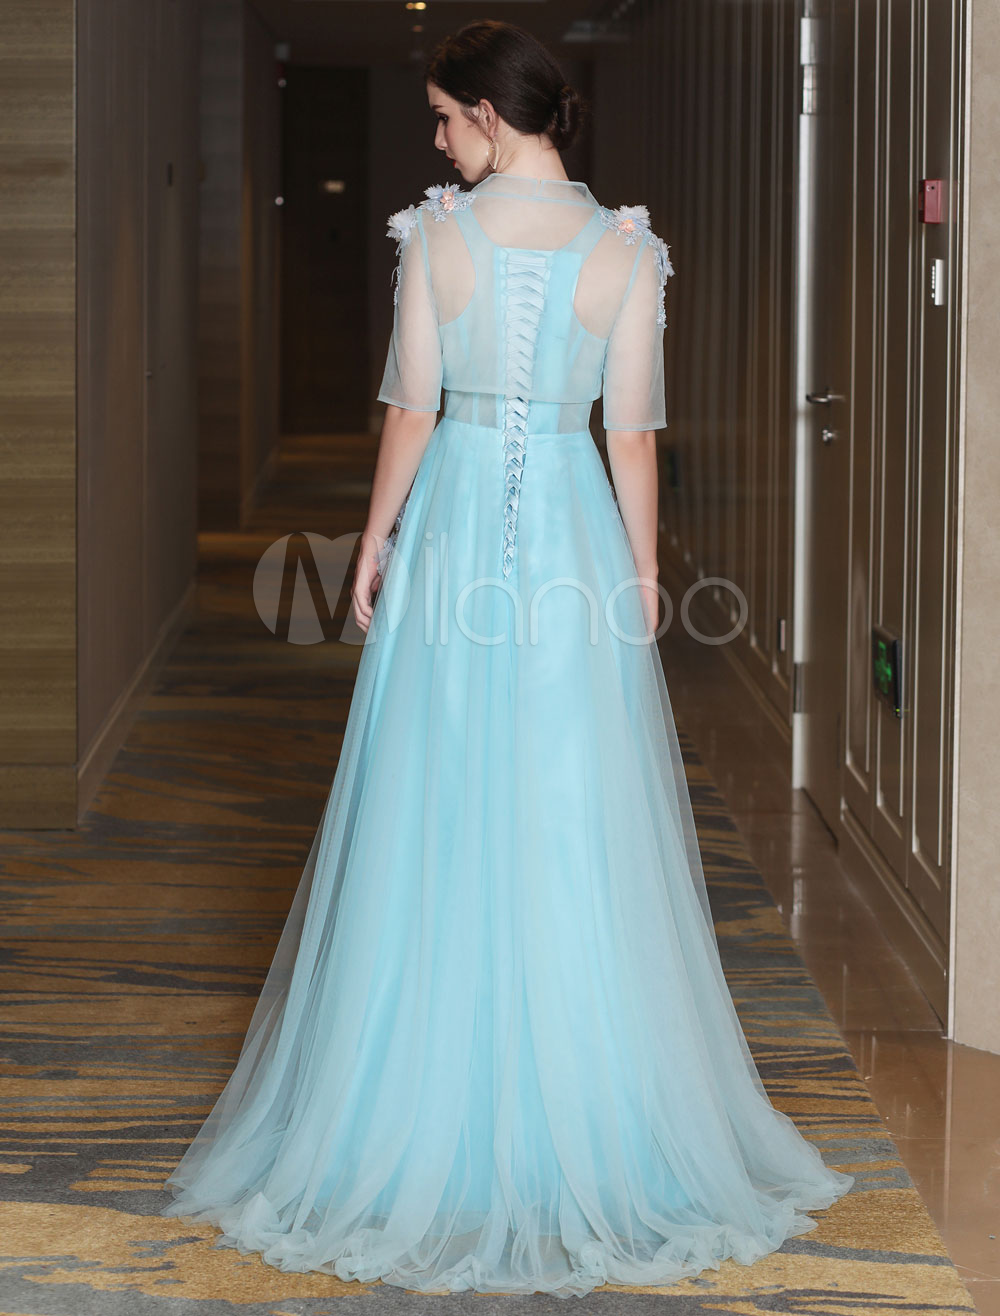 Luxury Prom Dresses Long Two Piece Tulle Lace Flowers Applique ...